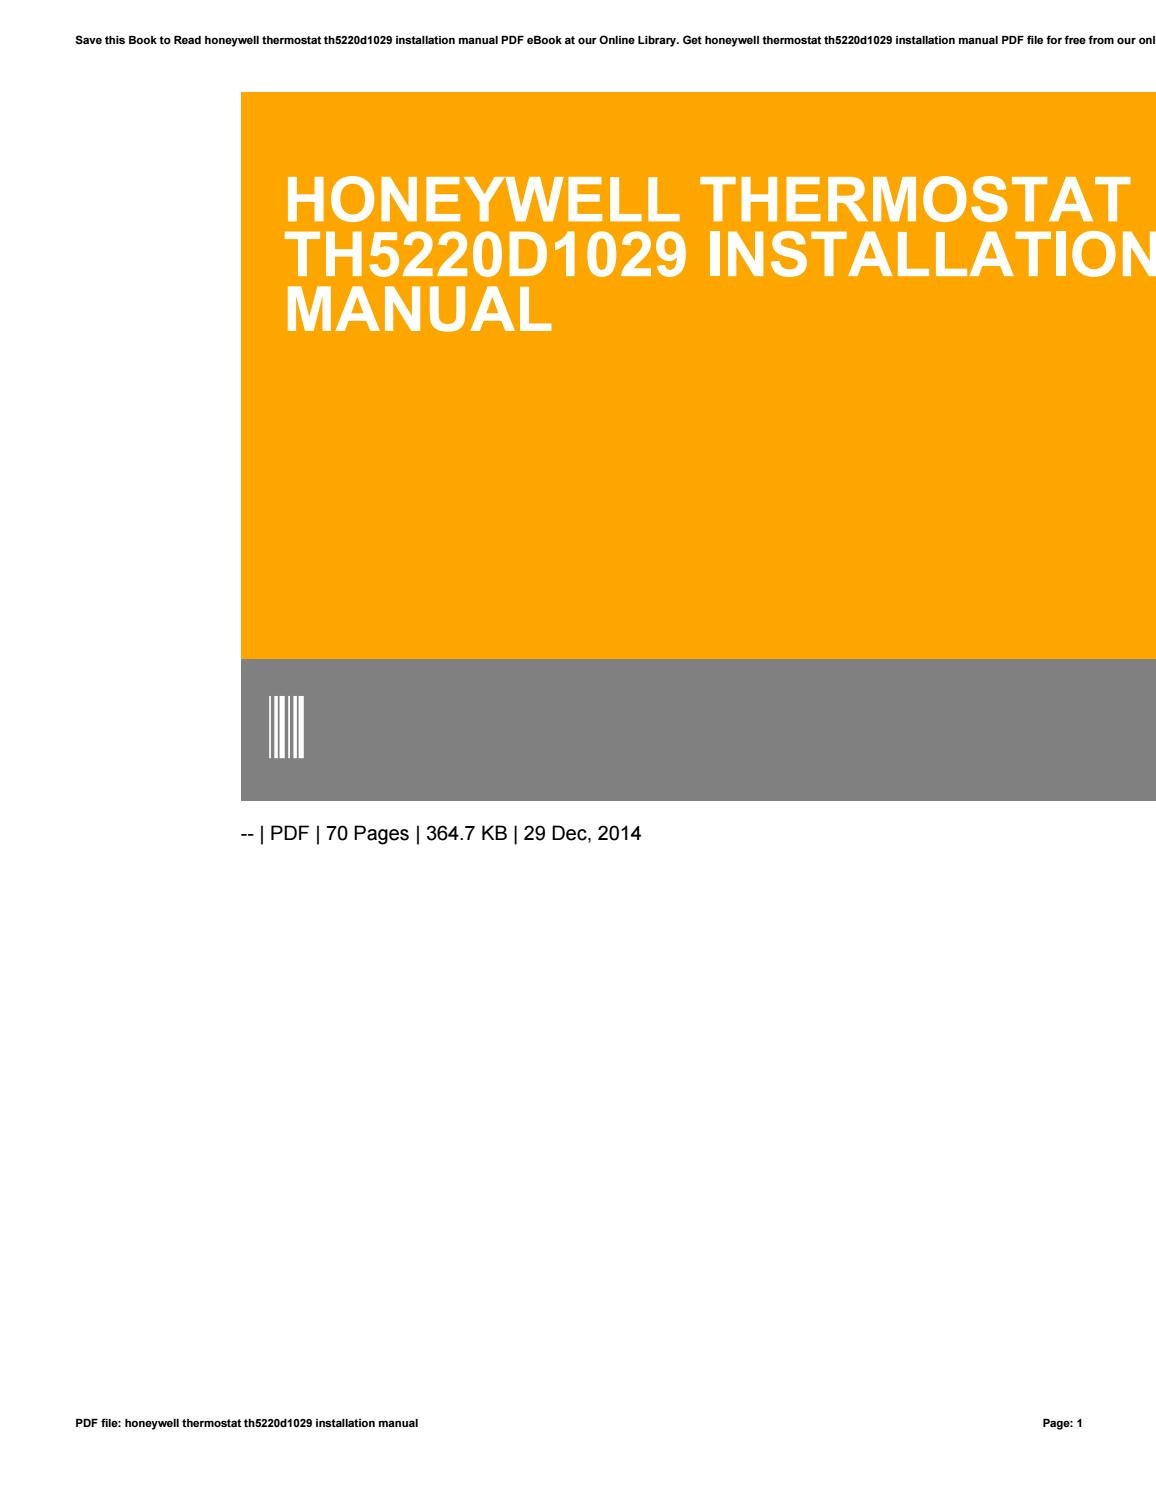 Honeywell Thermostat Th5220d1029 Installation Manual By Munip03asipp T8000 User Product Guide Issuu